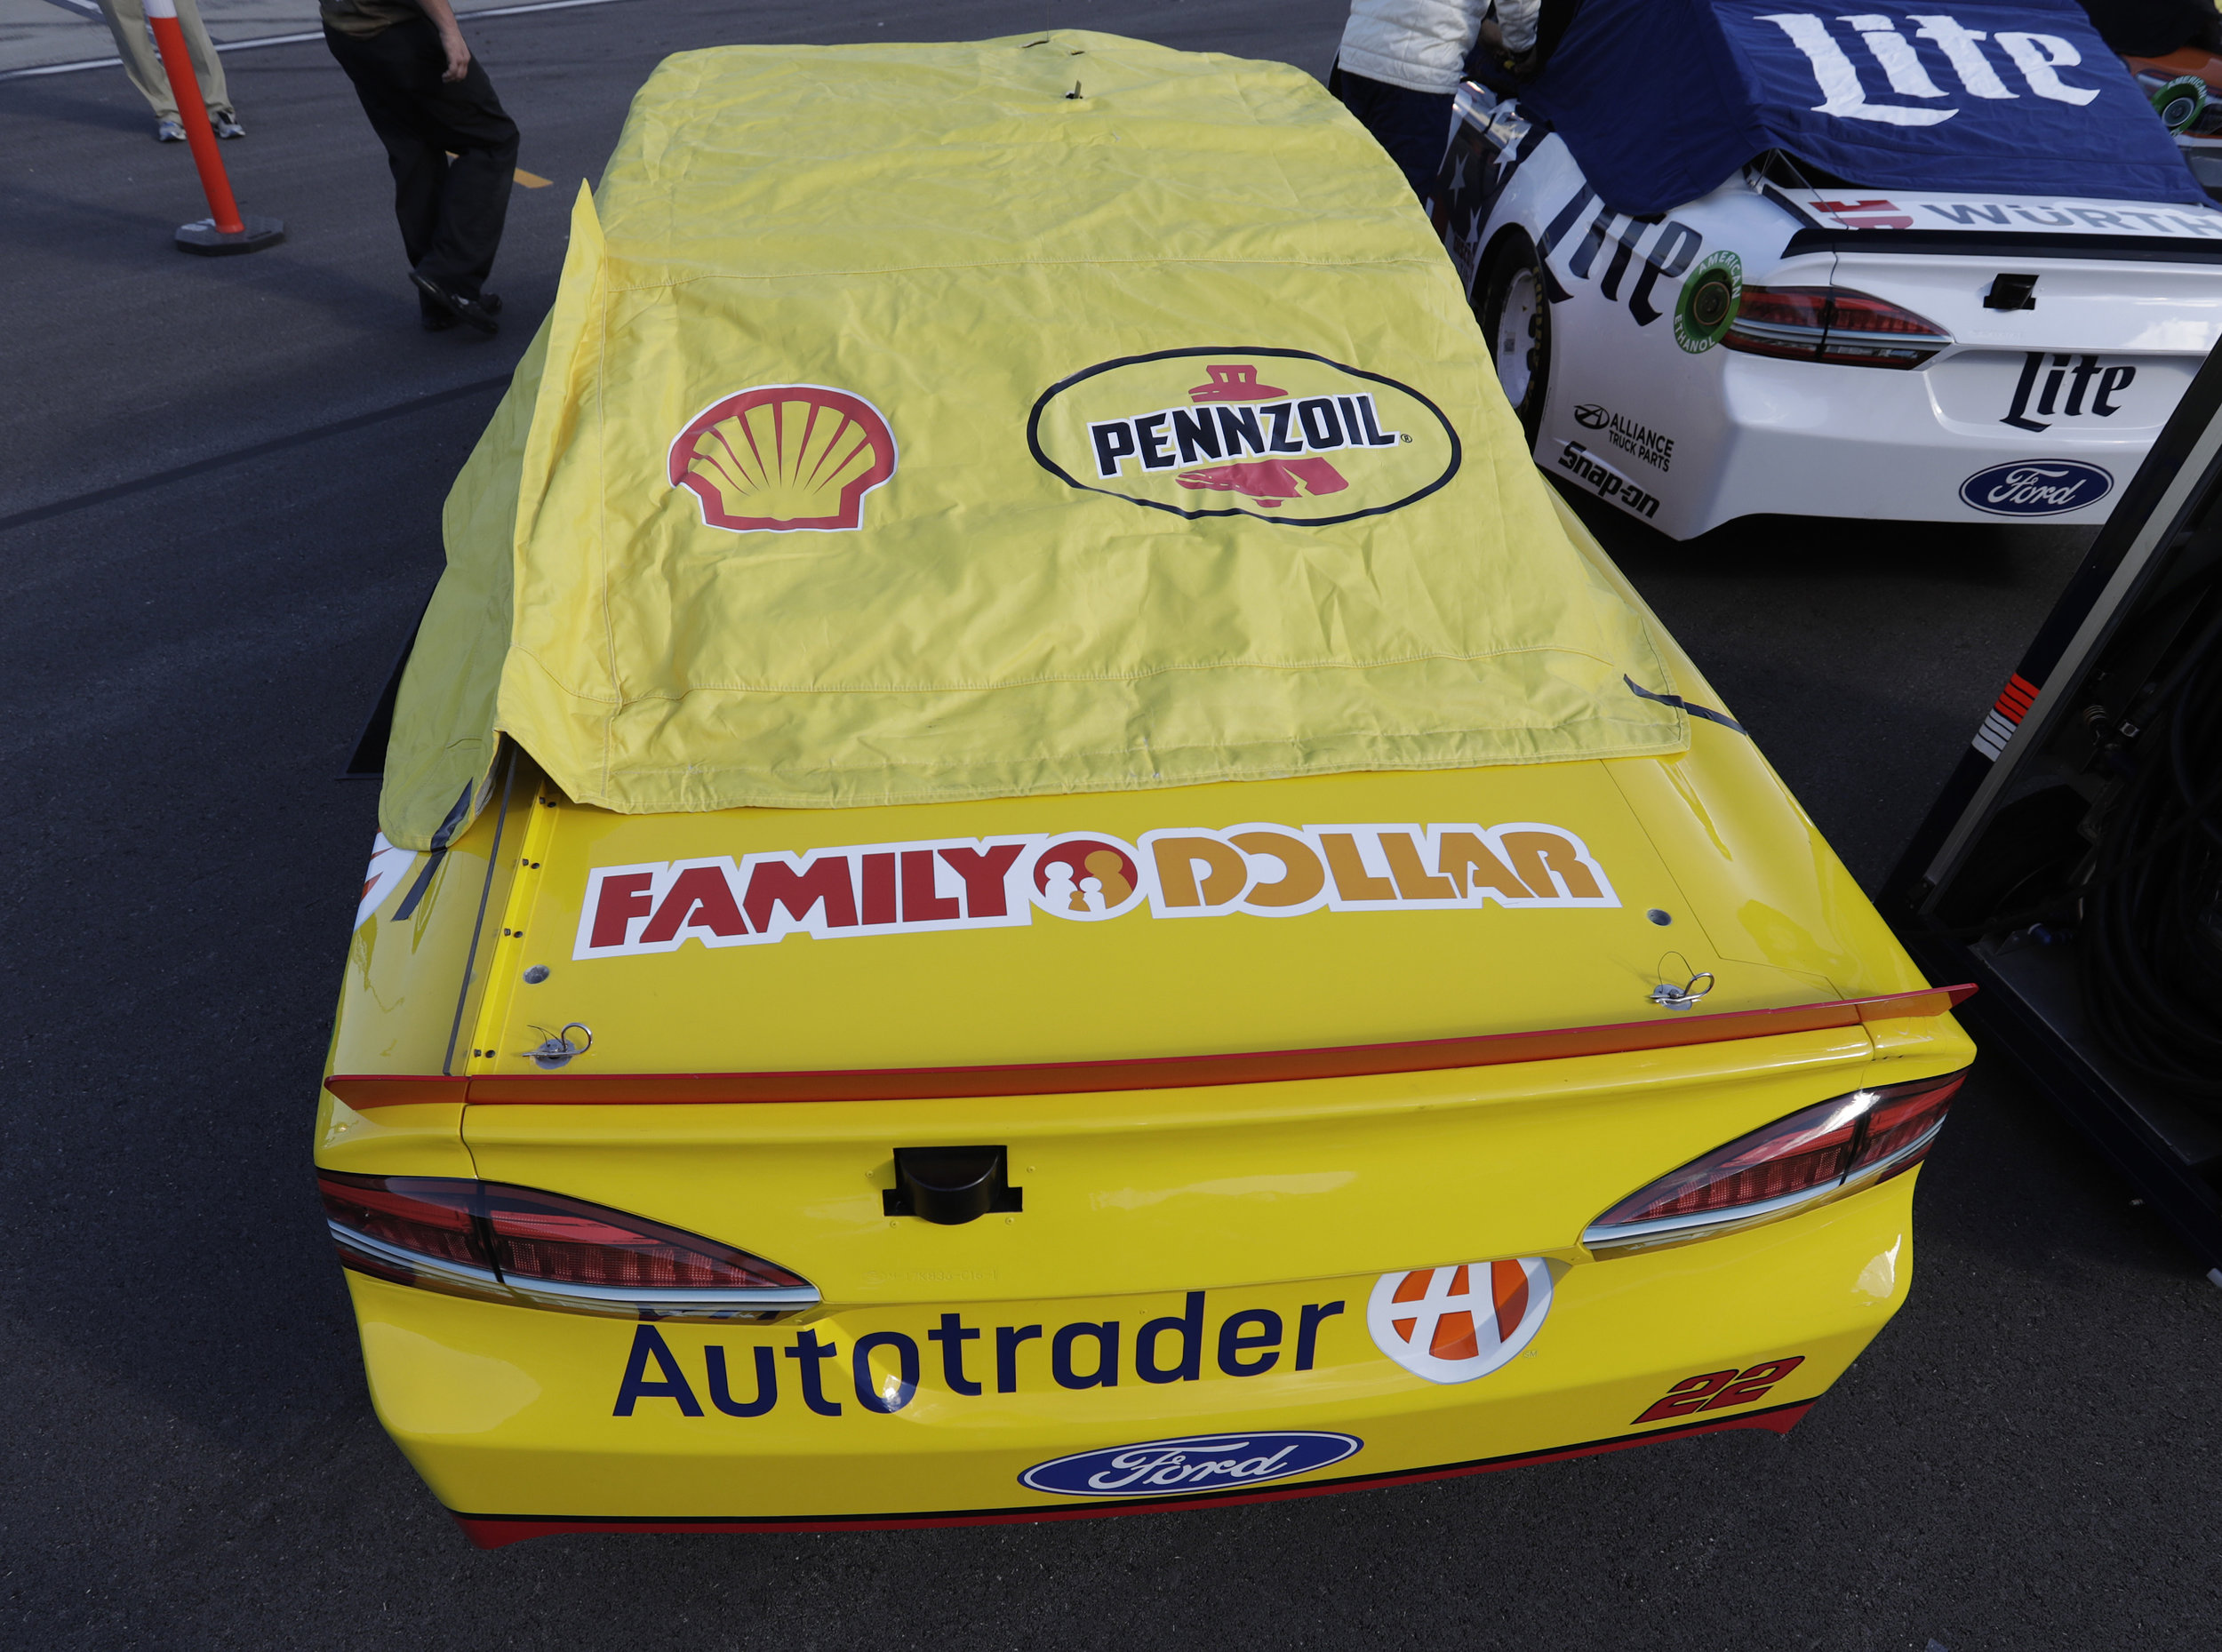 Family Dollar was featured on Joey Logano's decklid for the race.